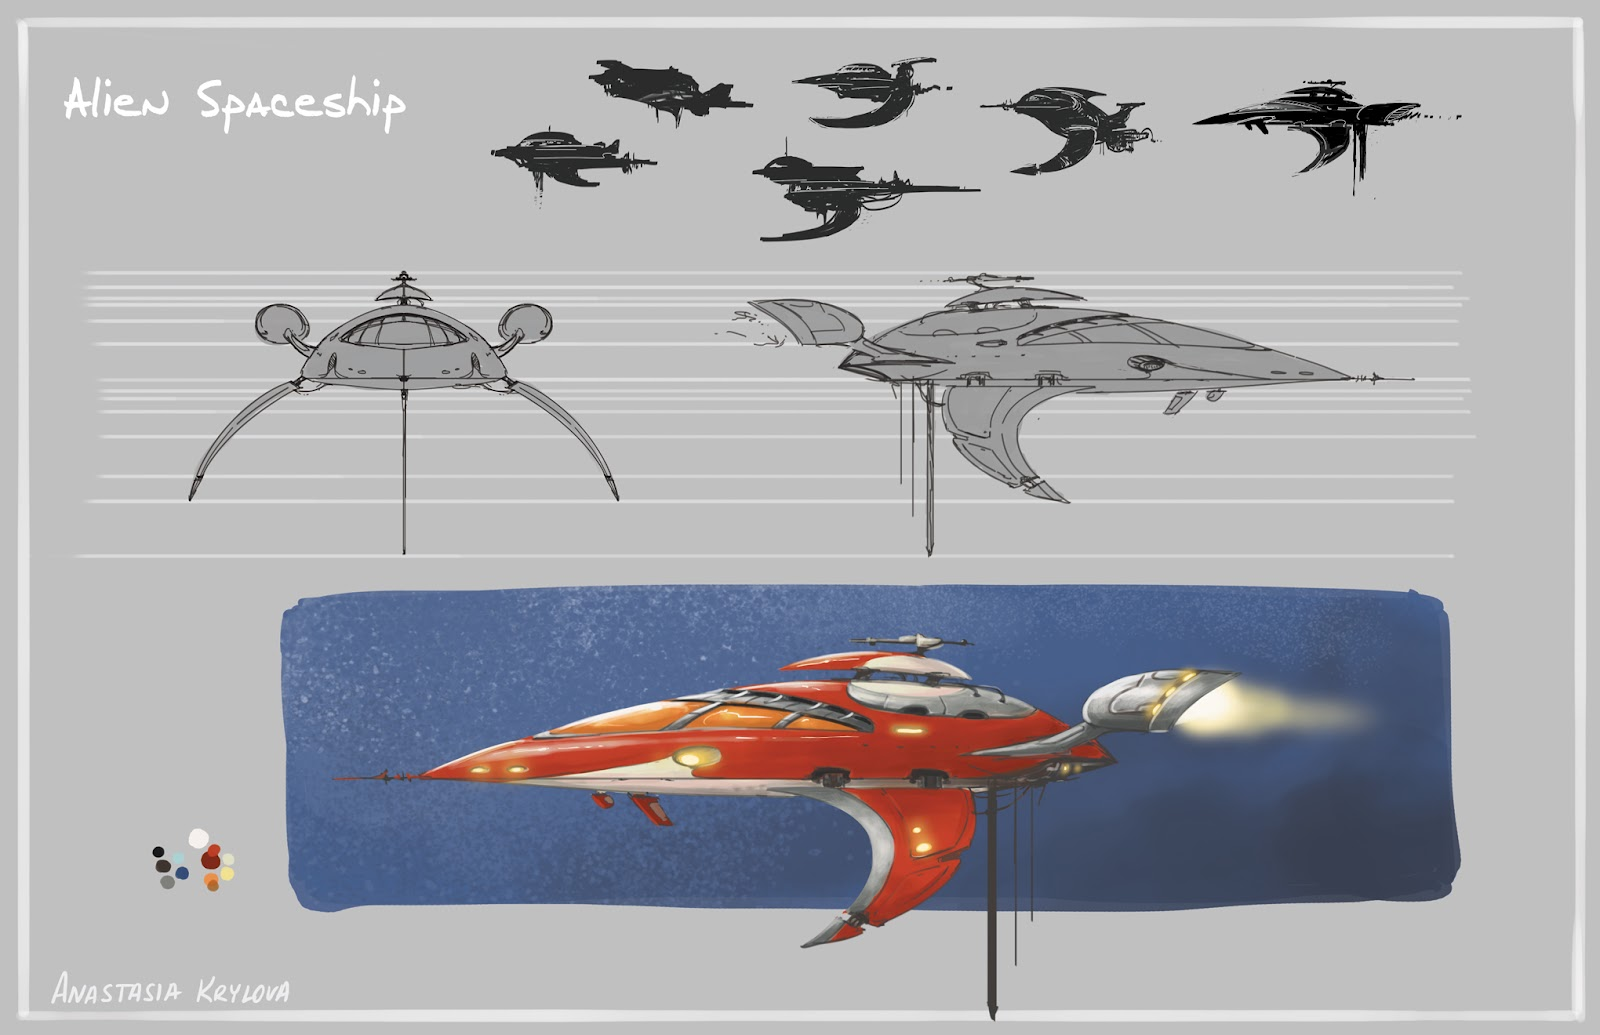 KSP Interplanetary Spacecraft Design - Pics about space